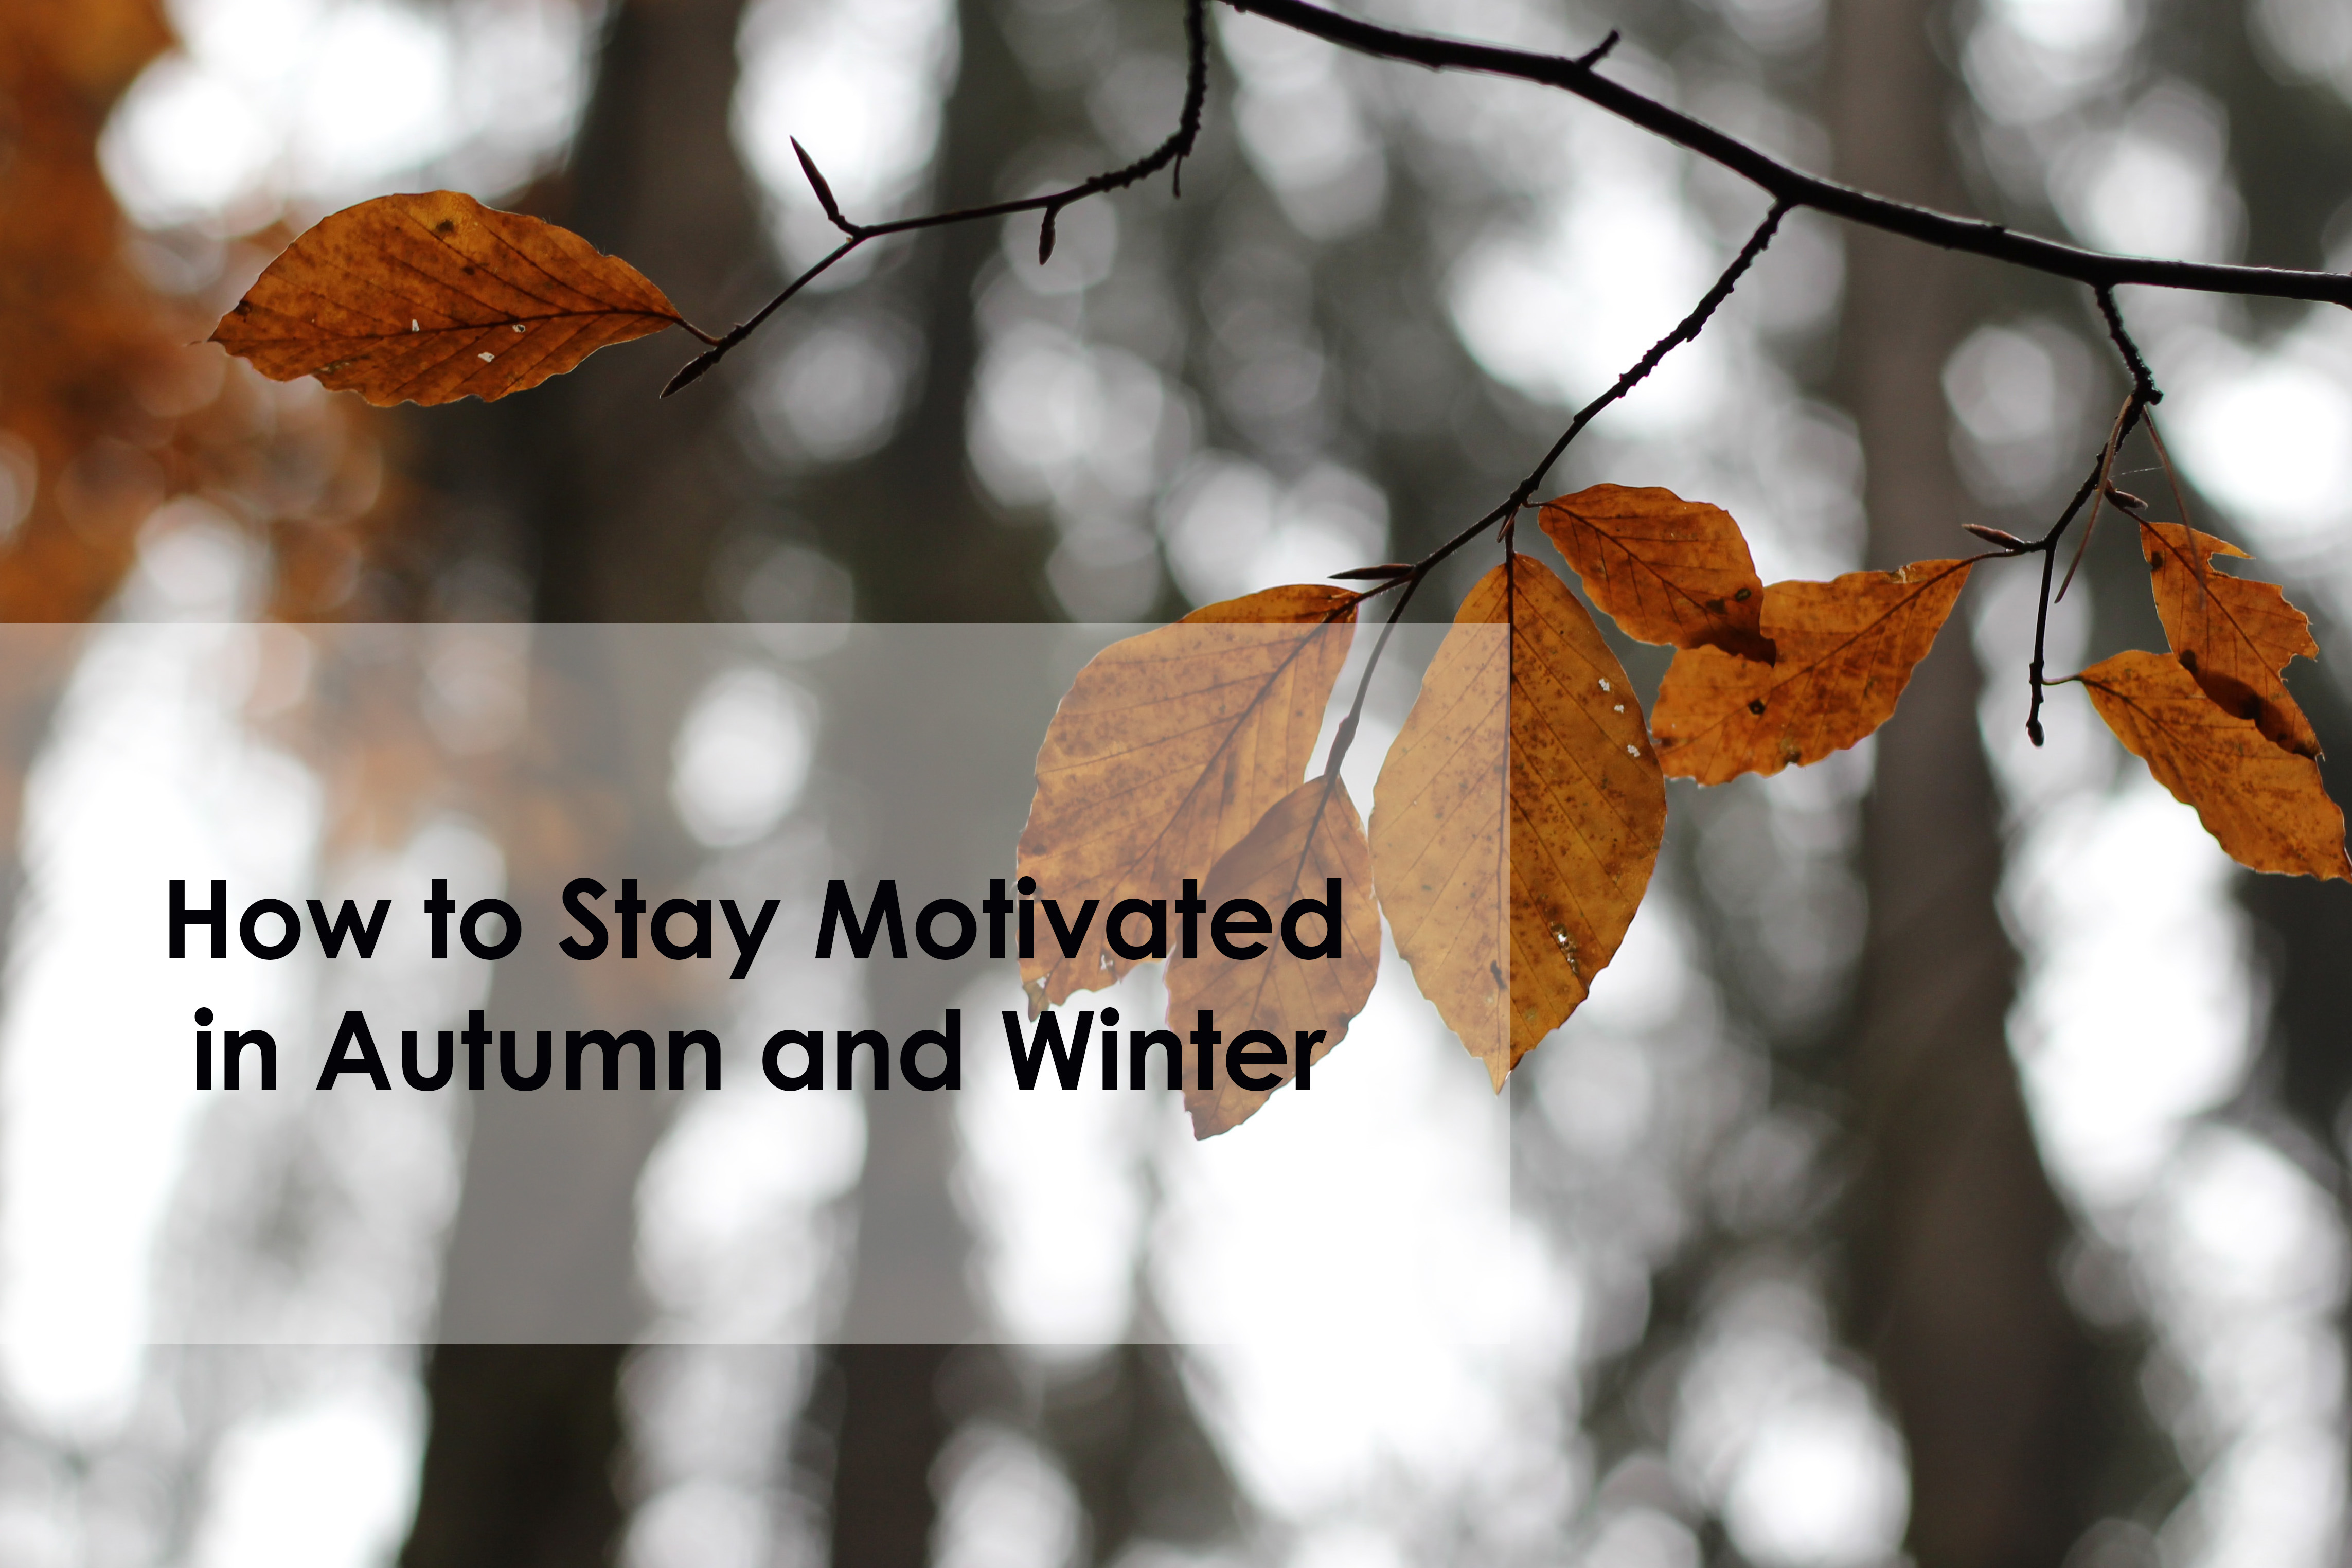 How to Stay Motivated in Autumn and Winter